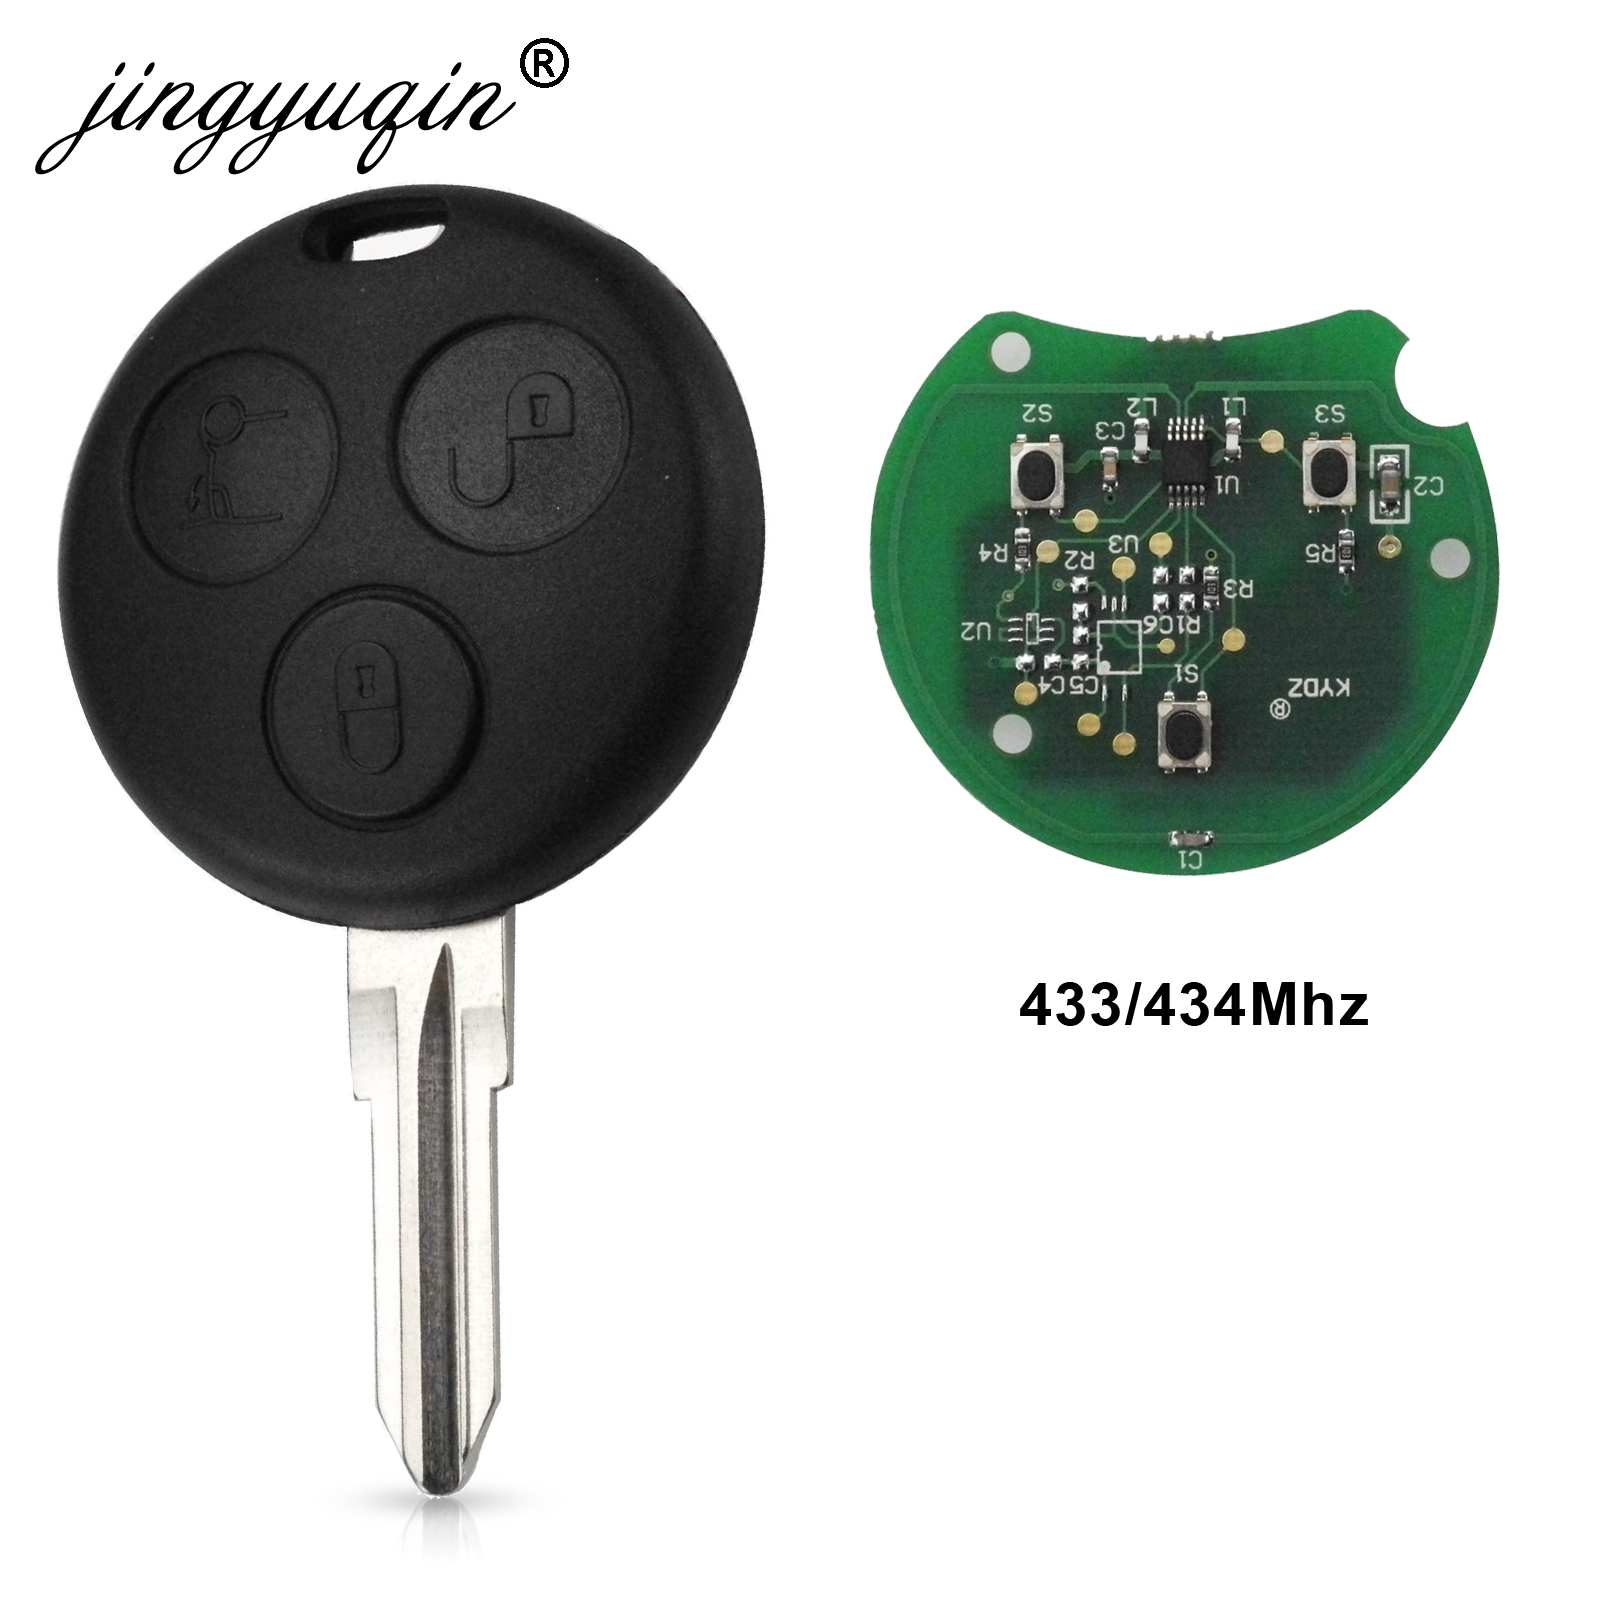 Bilchave For Mercedes Benz <font><b>Smart</b></font> City Fortwo Roadster <font><b>450</b></font> Remote <font><b>Key</b></font> Cover Case 3 Buttons 433MHz Replacement Fob image